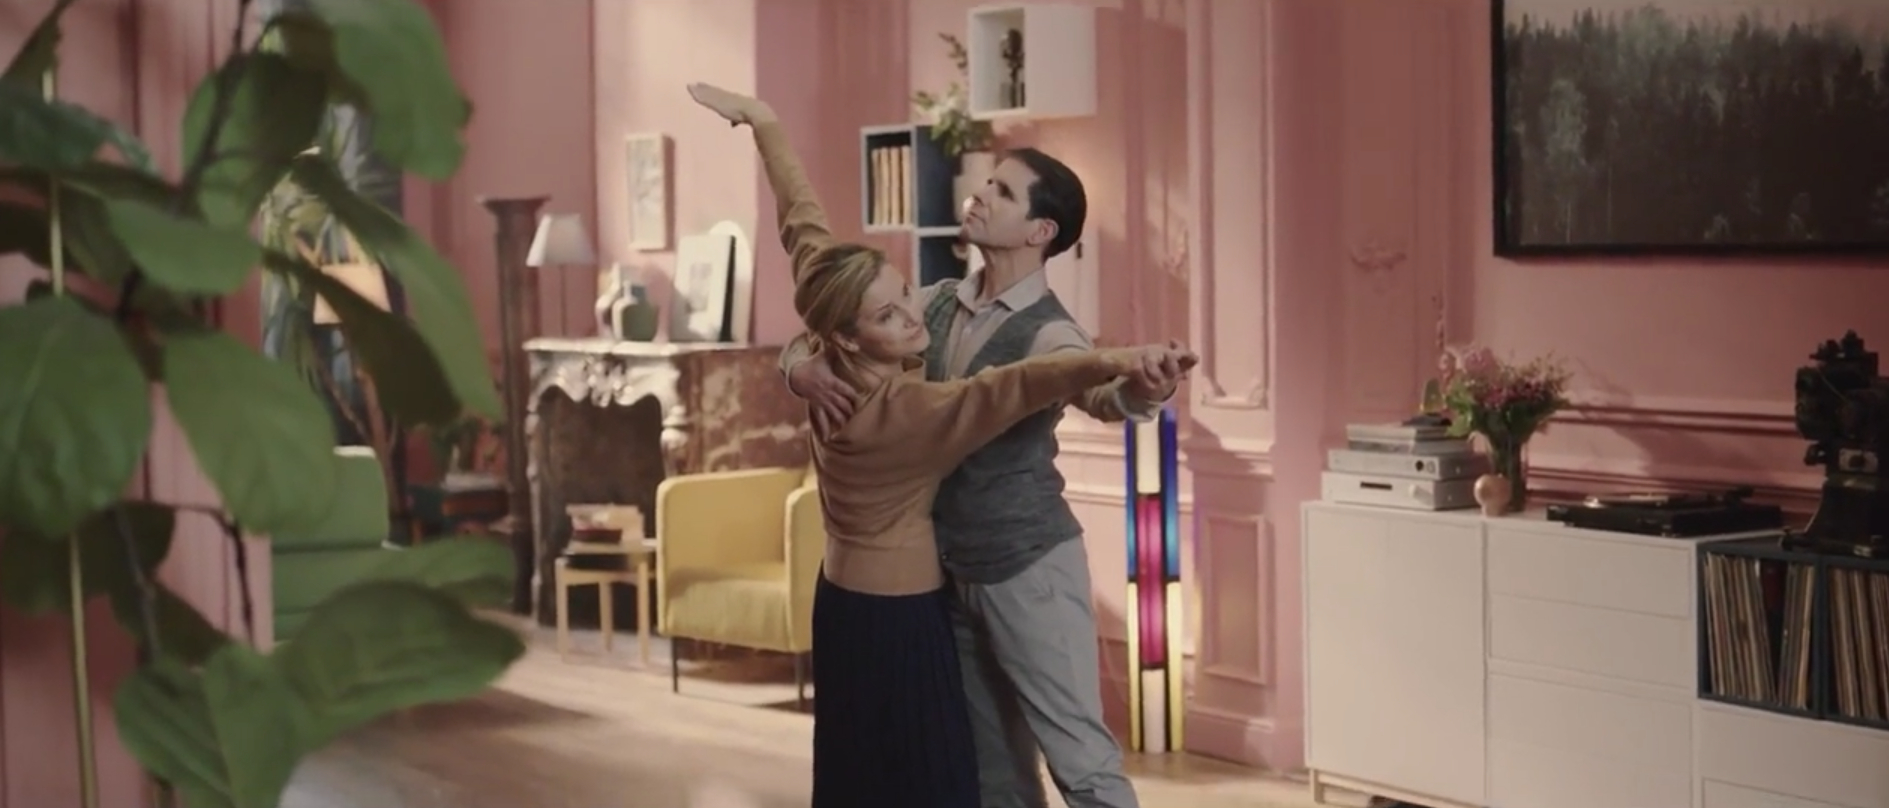 IKEA celebrates unexpected joy in a domestic setting